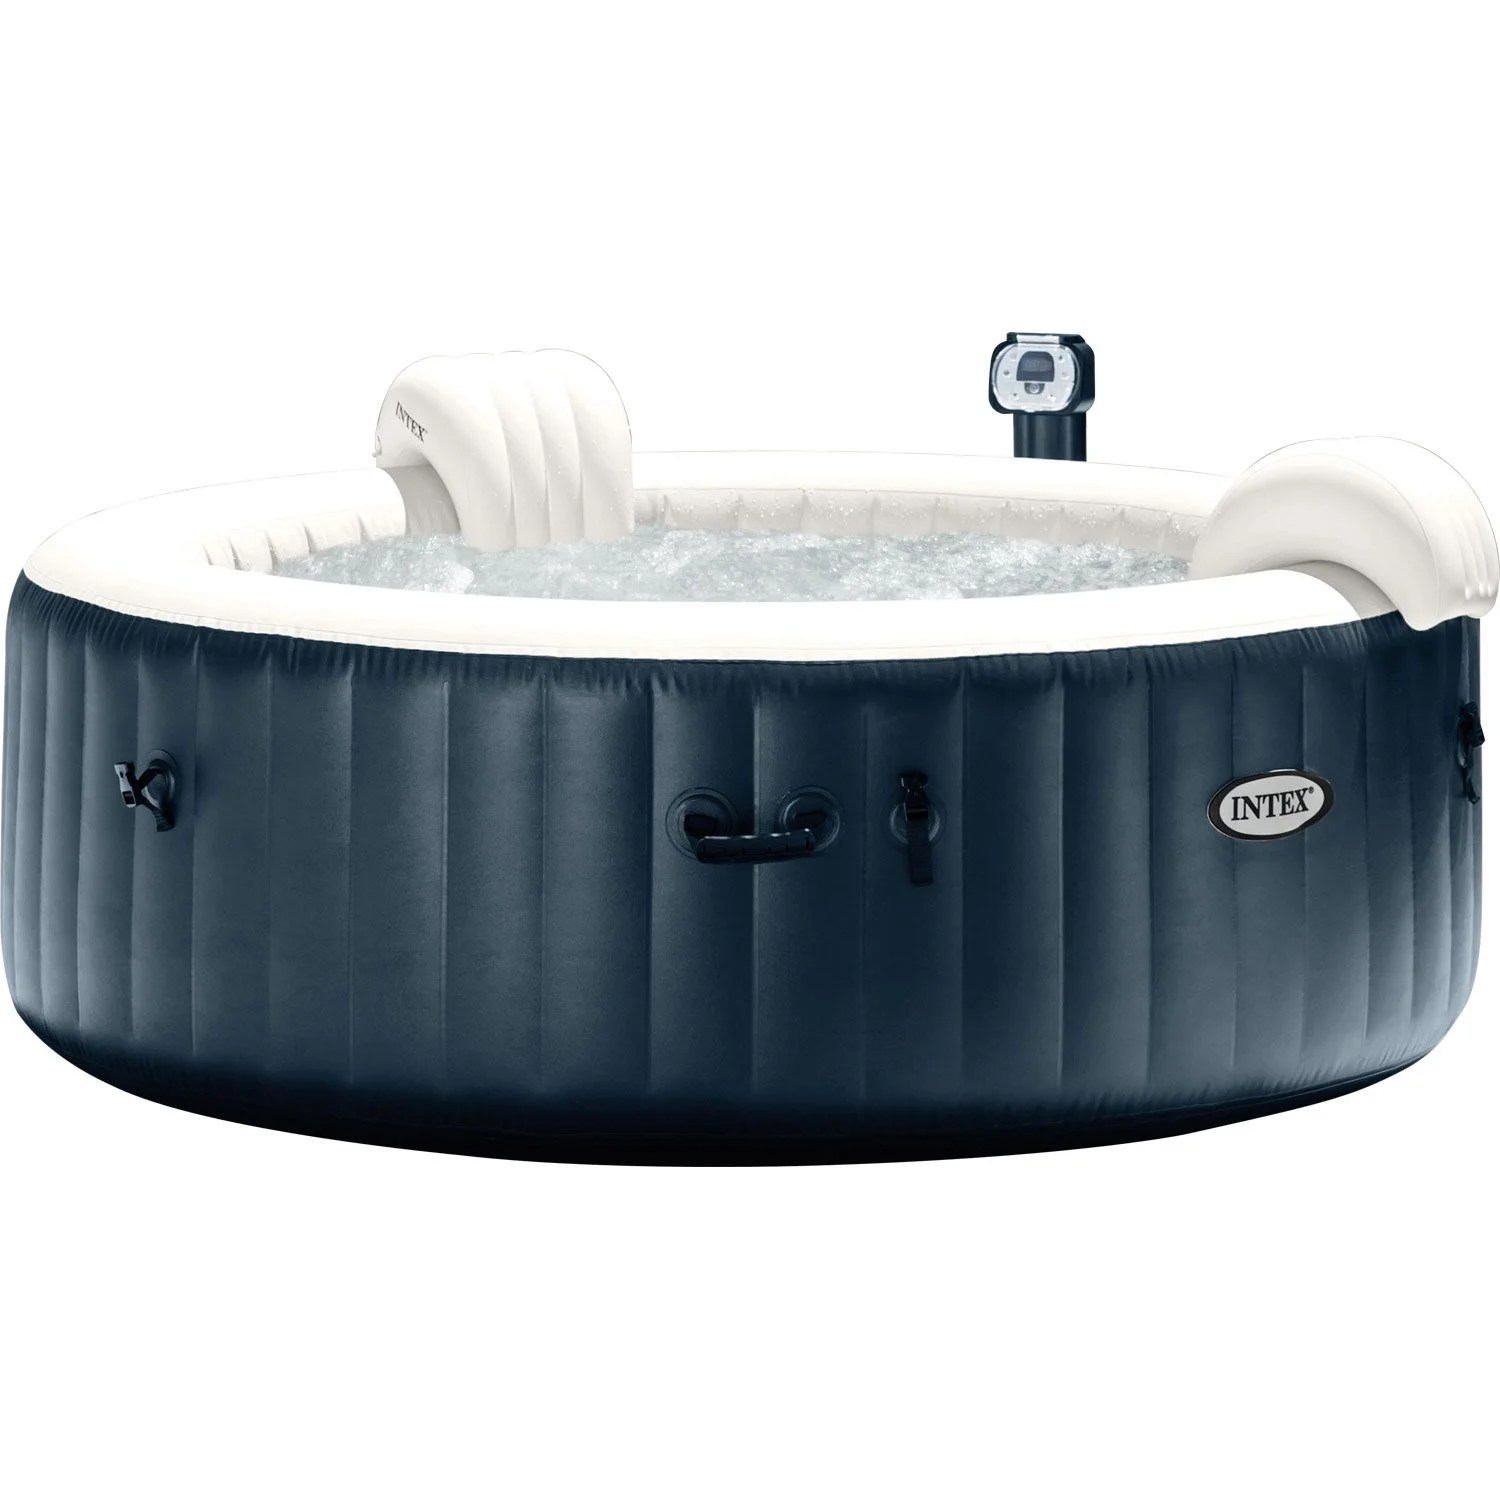 Prix Jacuzzi Exterieur Gonflable Spa Gonflable Intex Pure Spa Bulles Led Rond 4 Places Assises